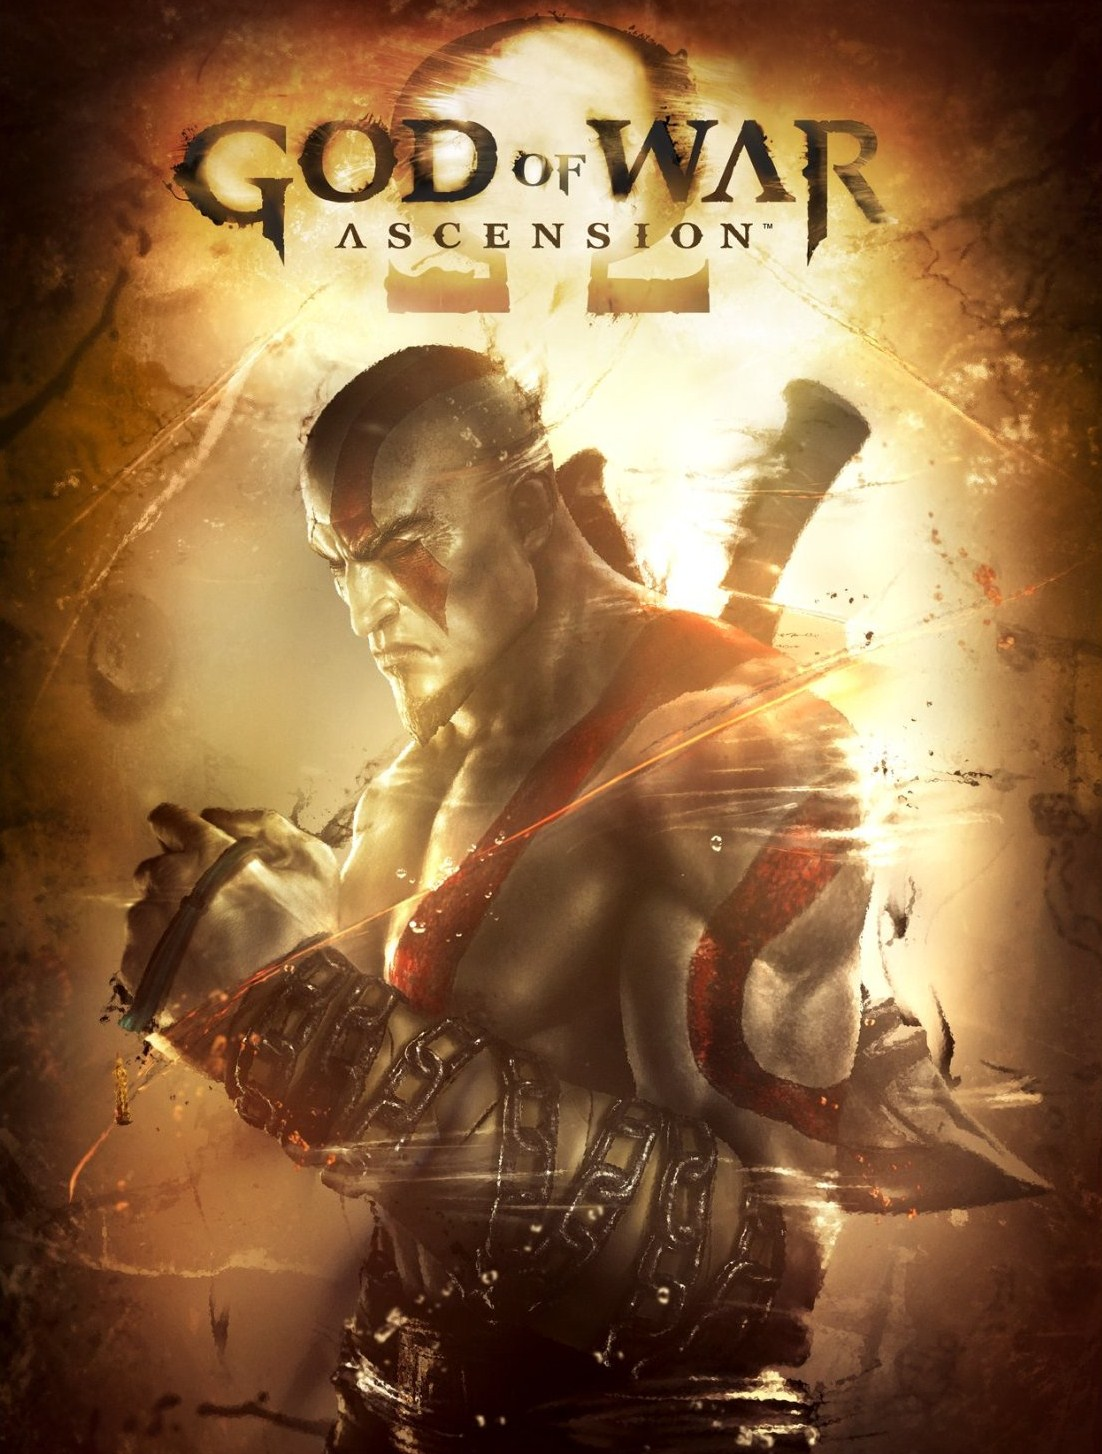 god of war 3 pc game download torrent iso